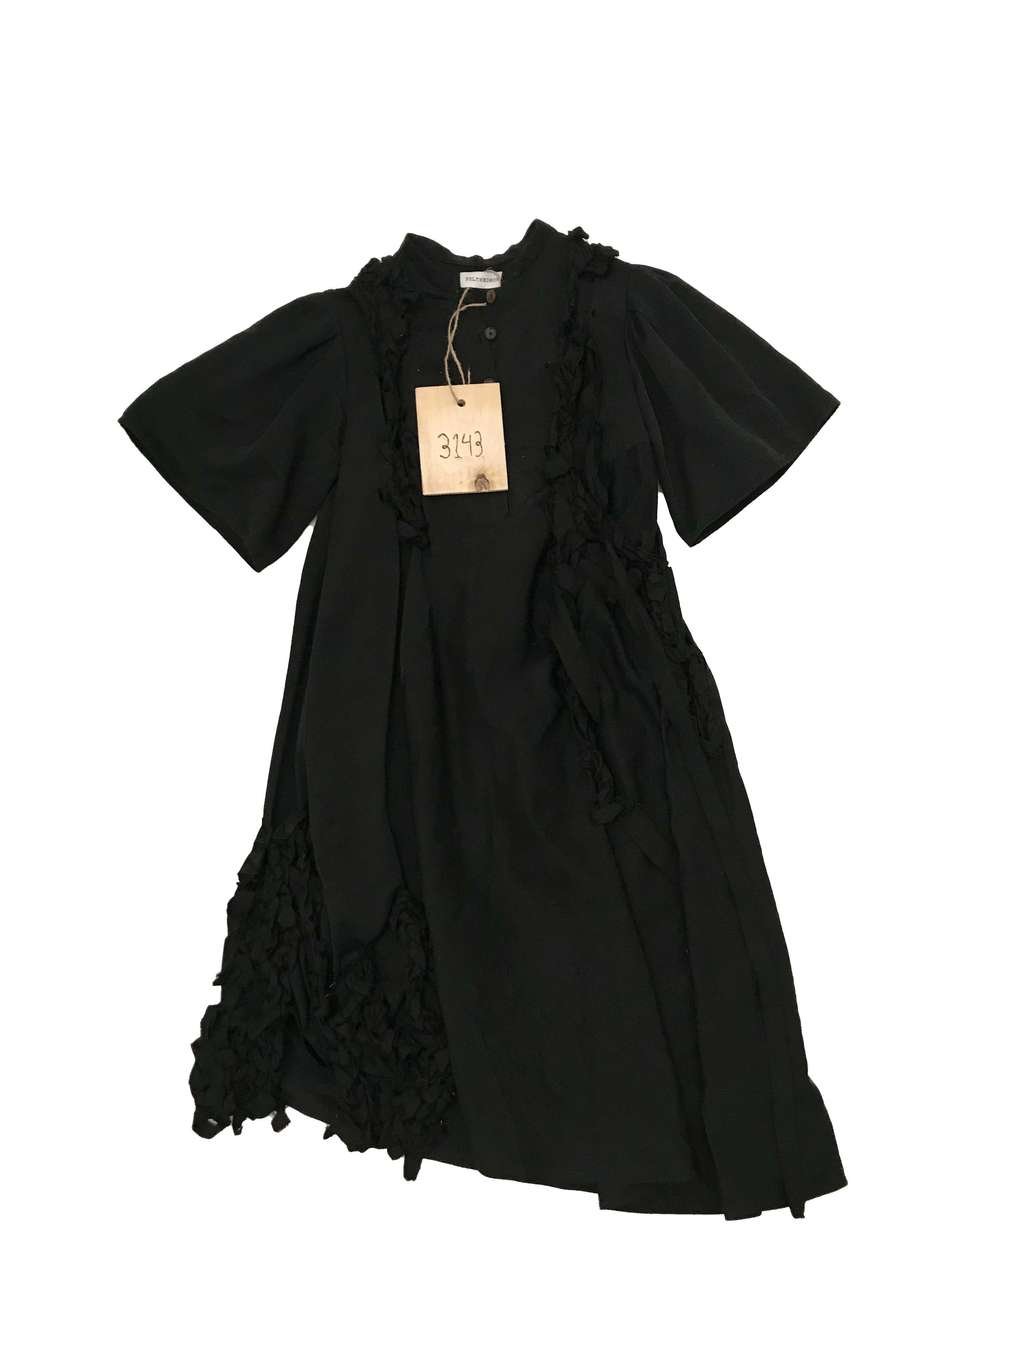 3143, Short sleeve black dress